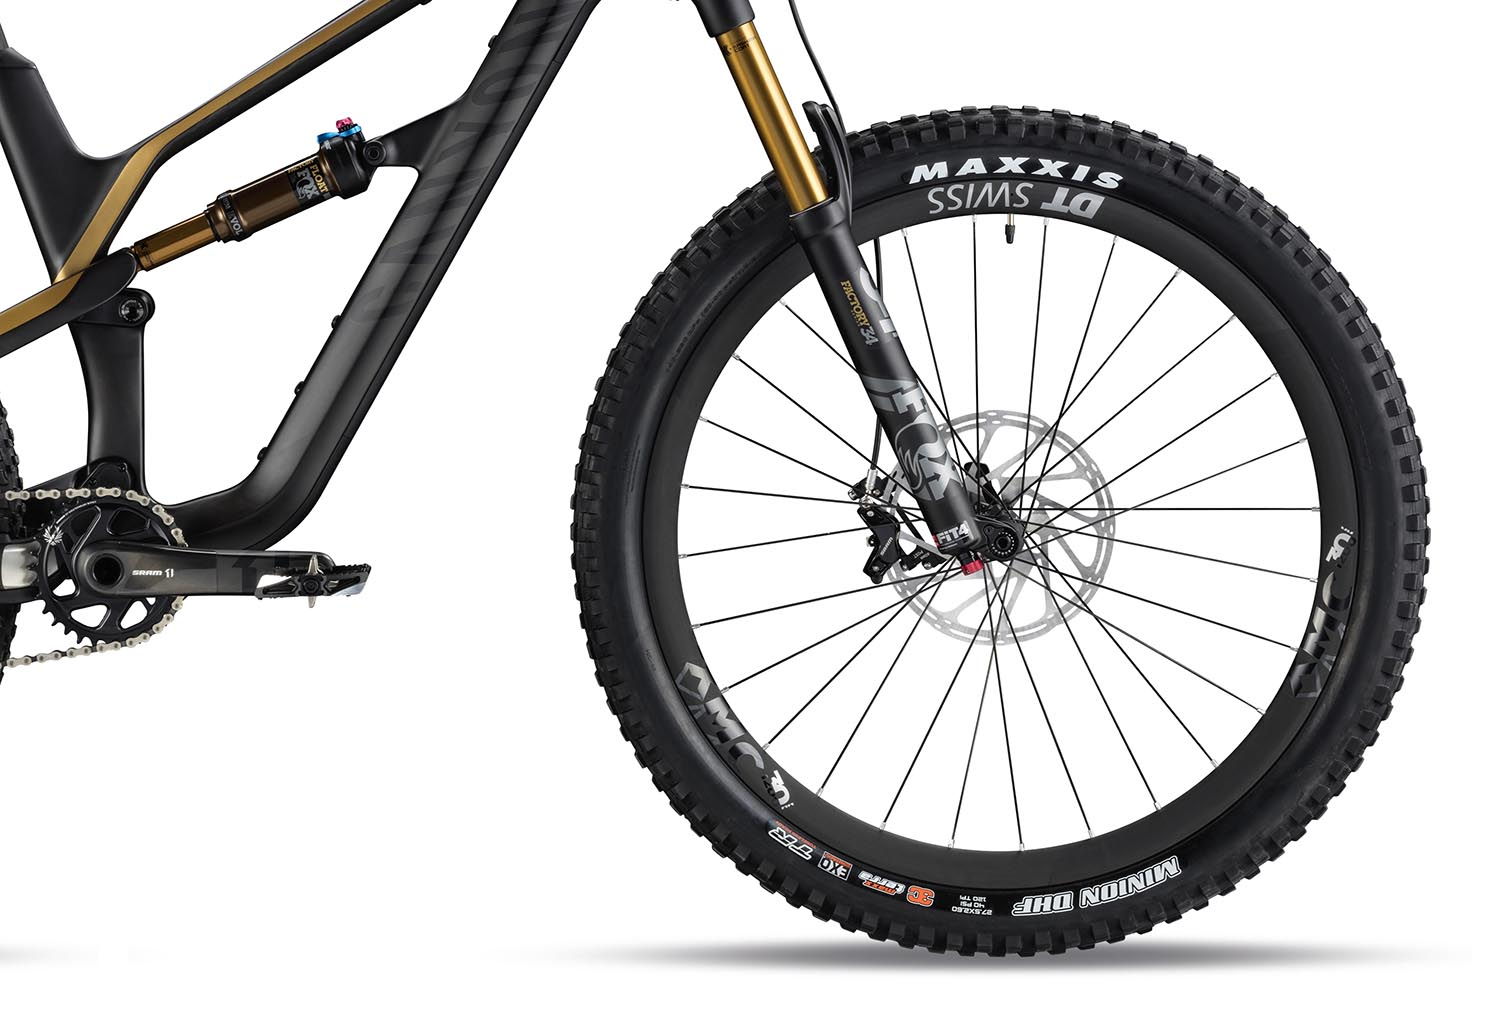 """Boost hubs, 30mm DT Swiss rims and Maxxis 2.6"""" tyres are the go-to on most models"""